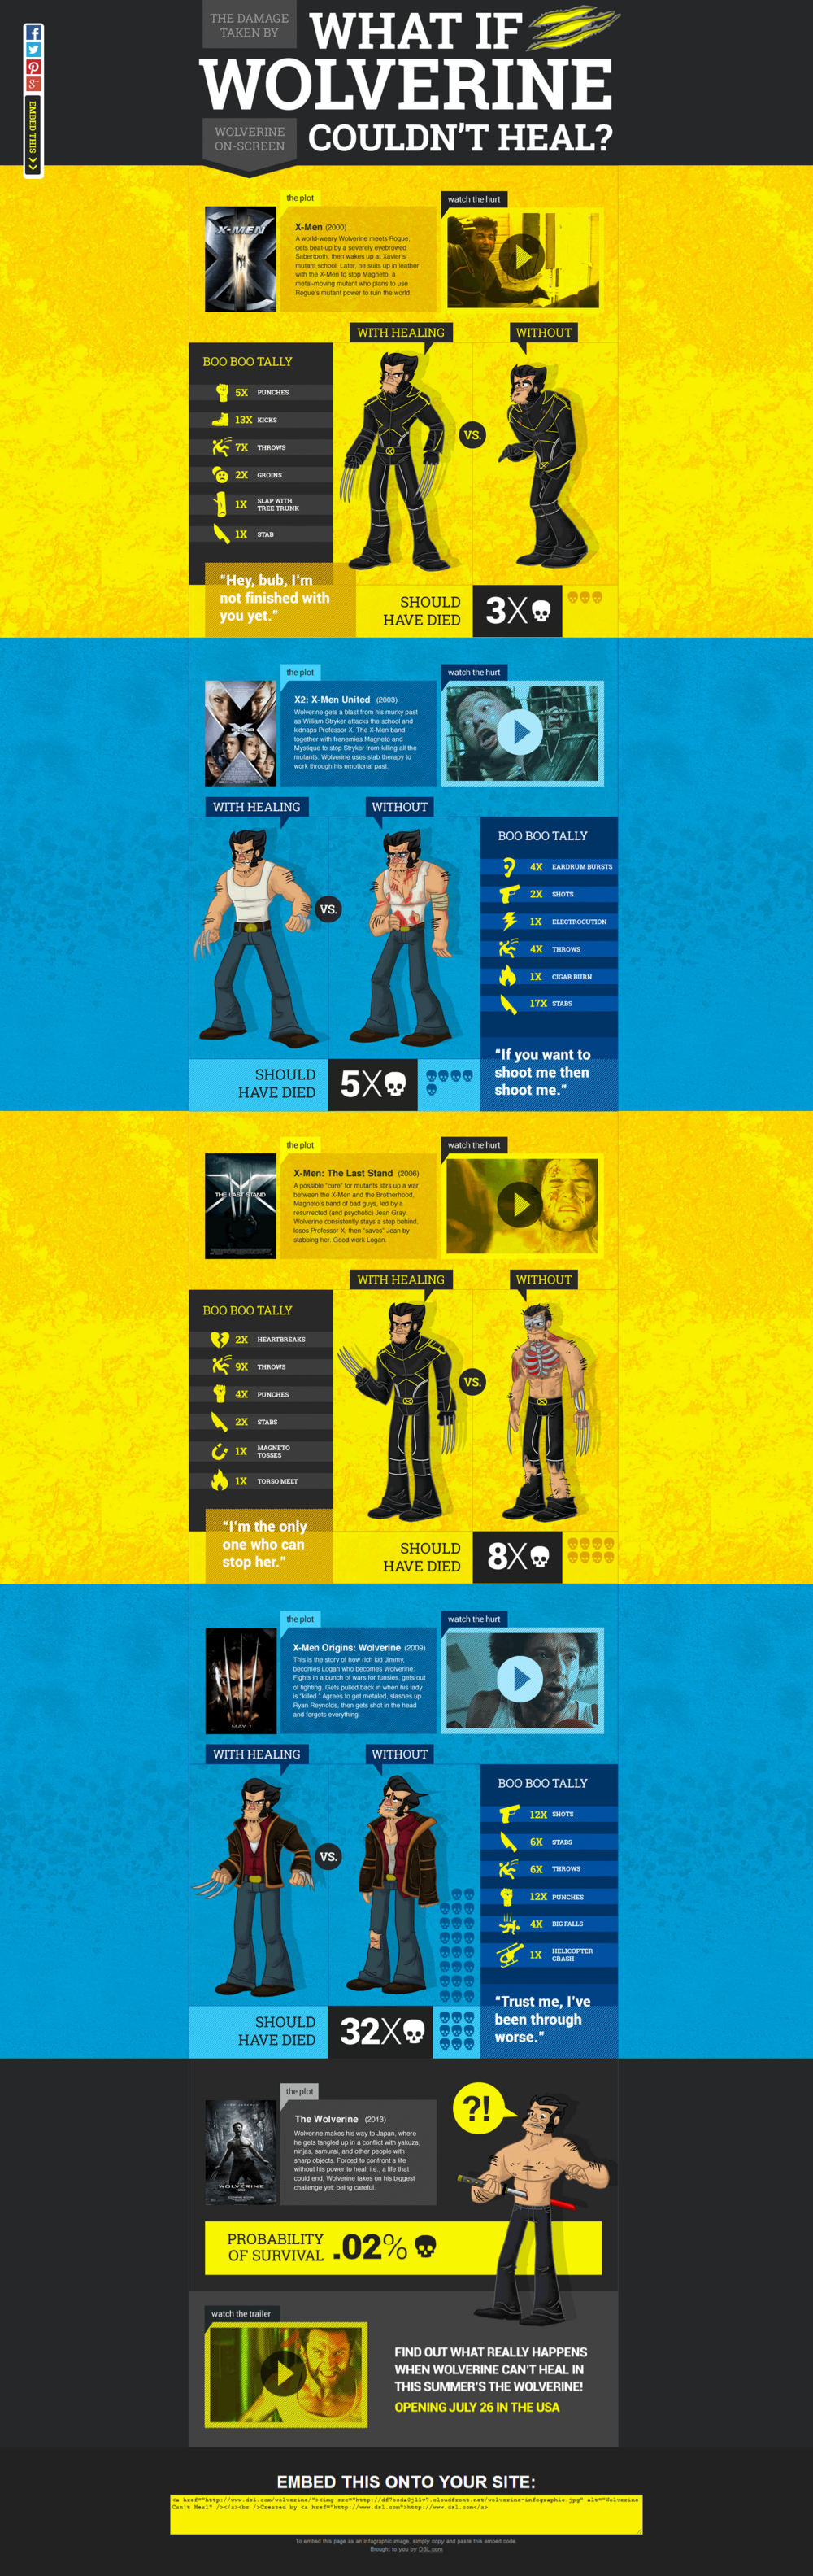 Wolverine Infographic  What If Wolverine Couldn t Heal .png